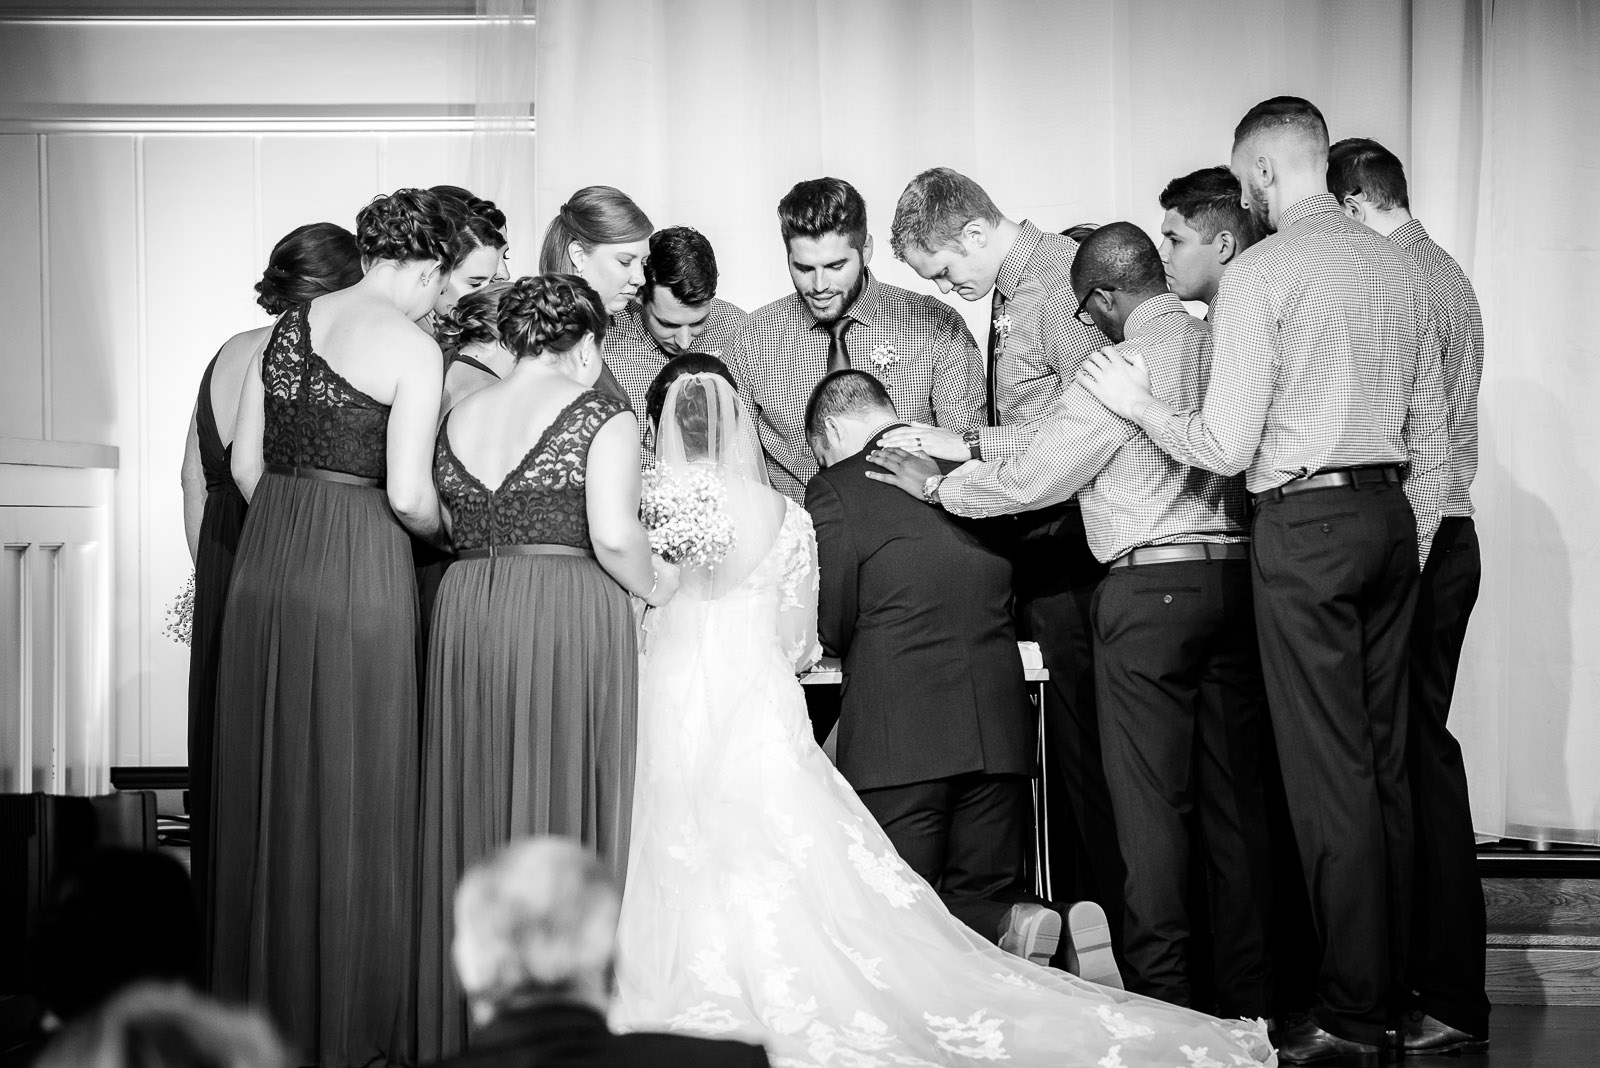 Eric_and_Christy_Photography_Blog_Wedding_Stacey_Geoff-13